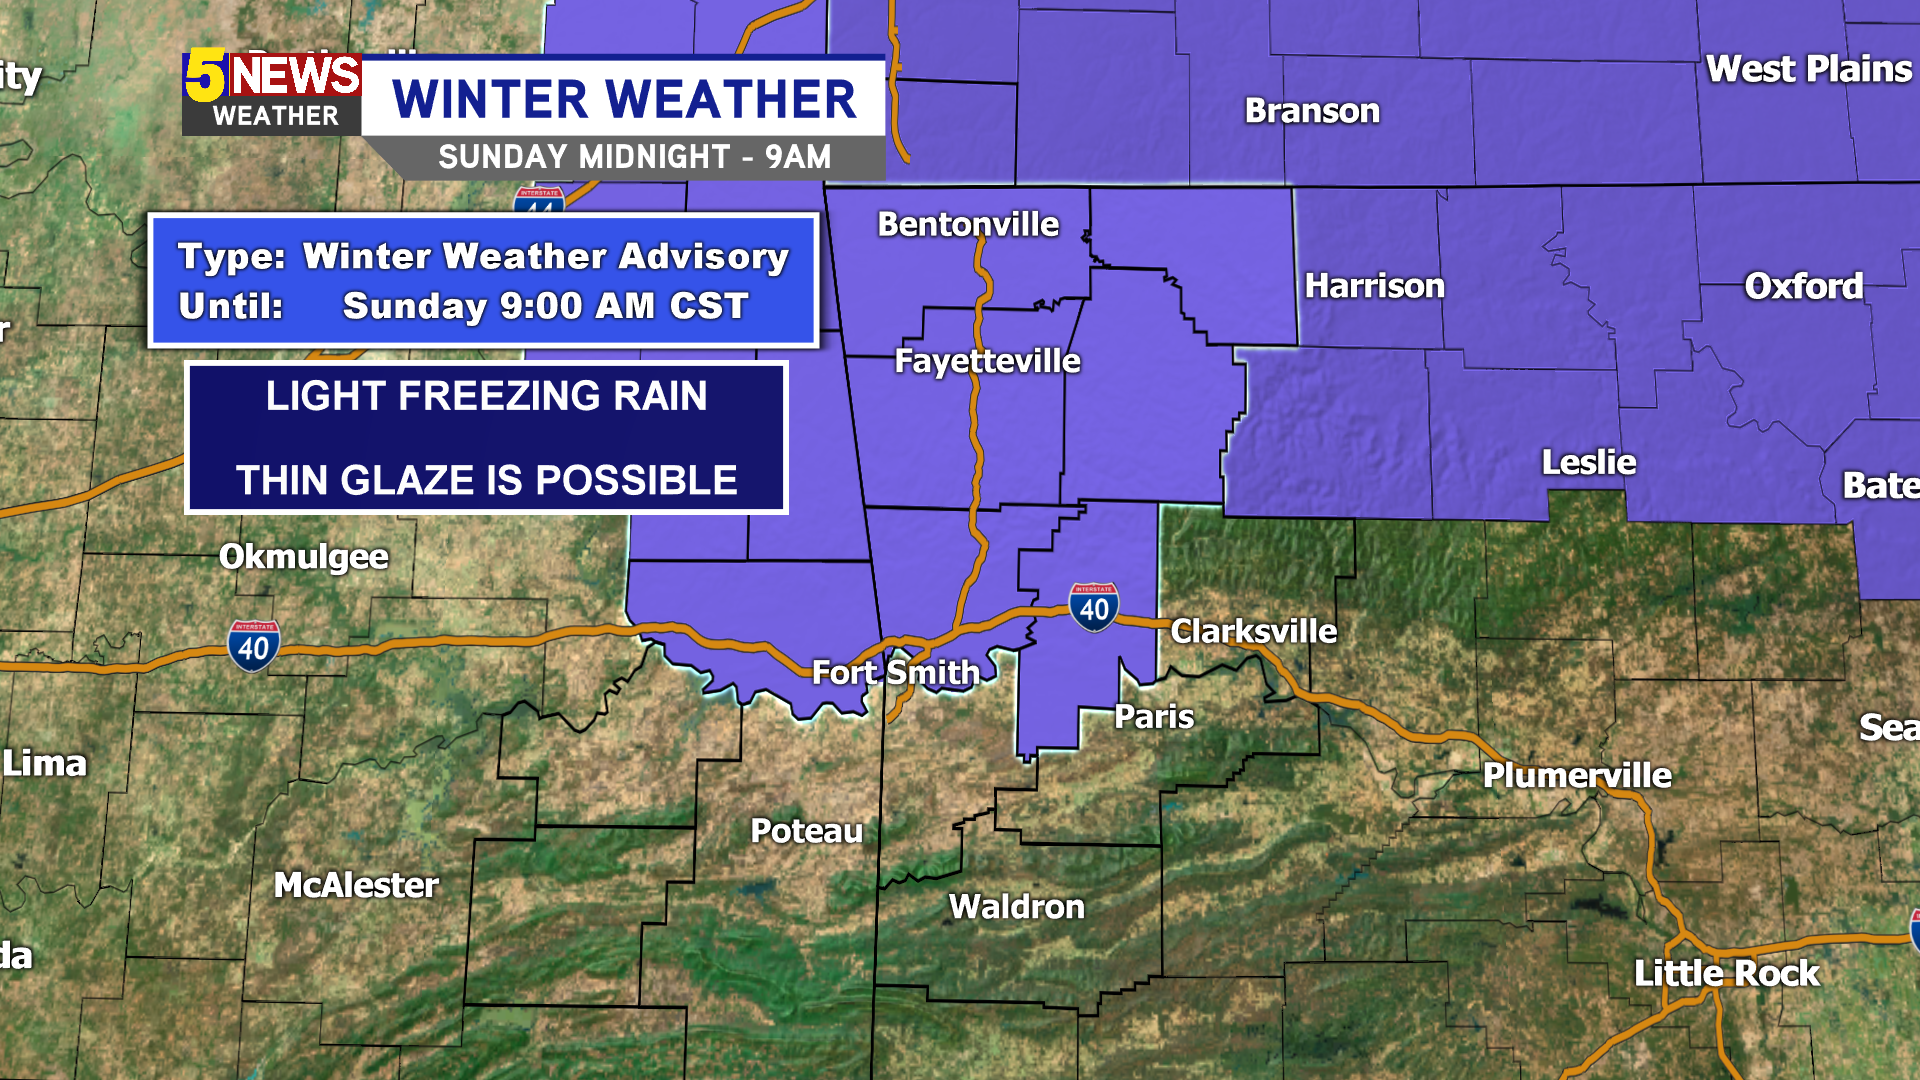 Winter weather advisory in effect until 9 pm Sunday